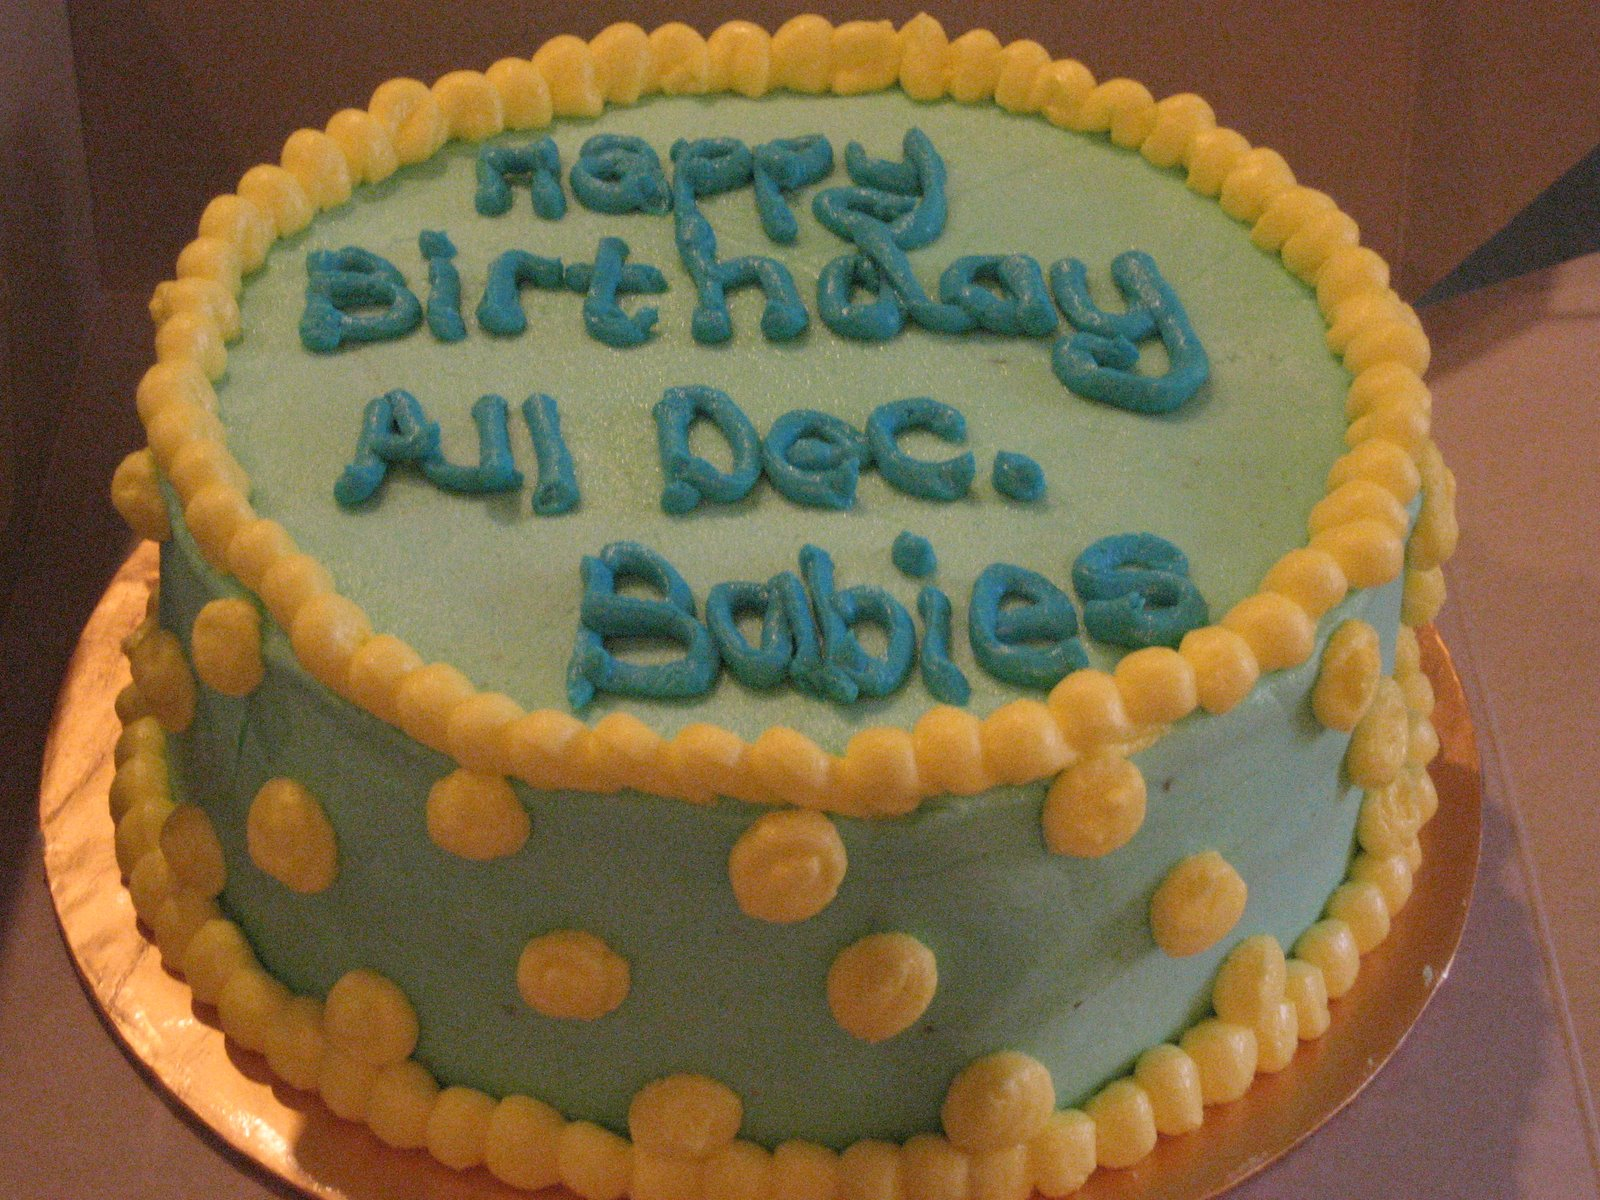 december birthday cakes - HD 1600×1200